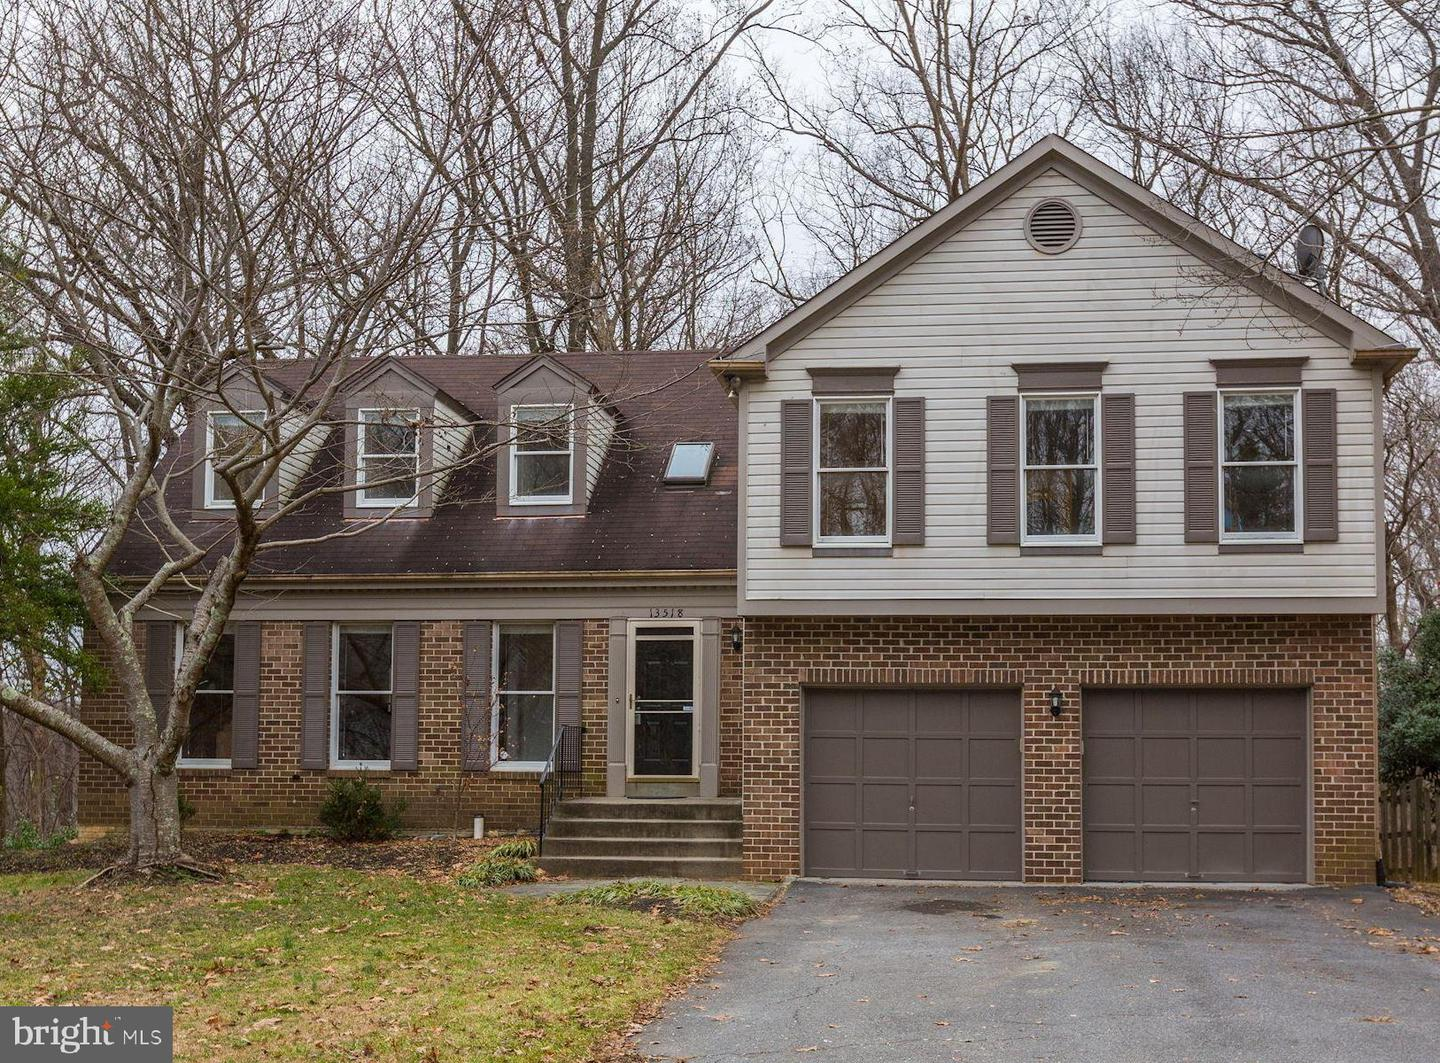 13518 CEDAR CREEK LANE, SILVER SPRING, Maryland